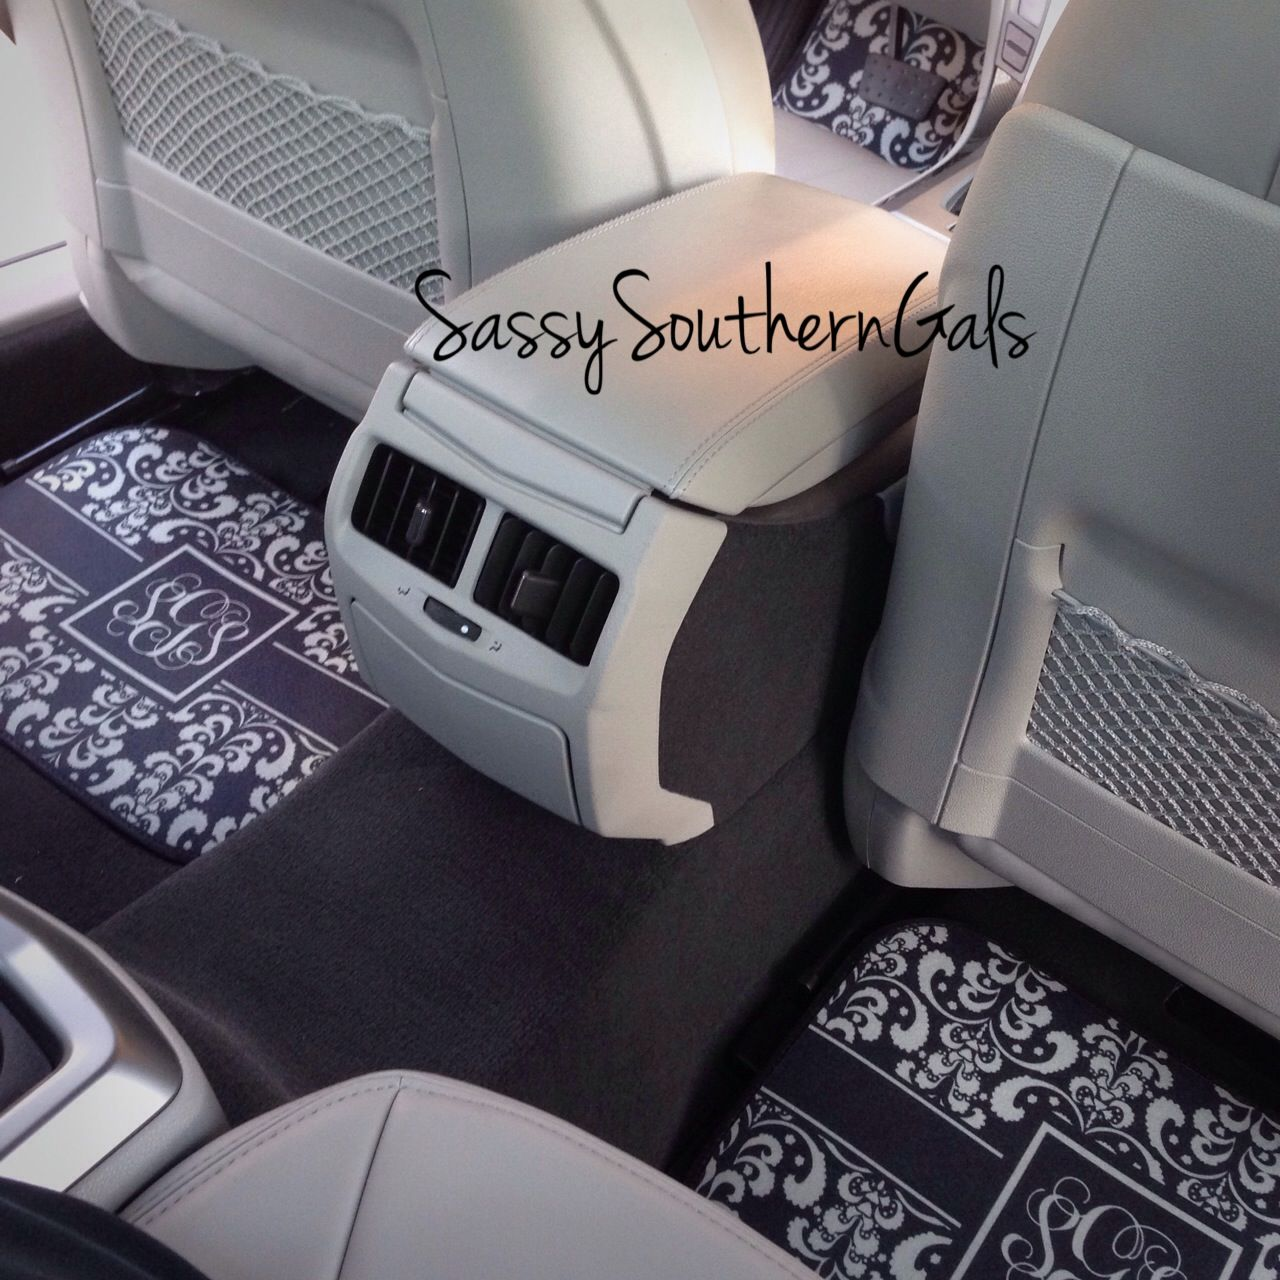 monogram best ideas gals pattern and personalized white mats decorating monogrammed design with appealing southern car lovable acessories accessories sassy floor chevron in grey